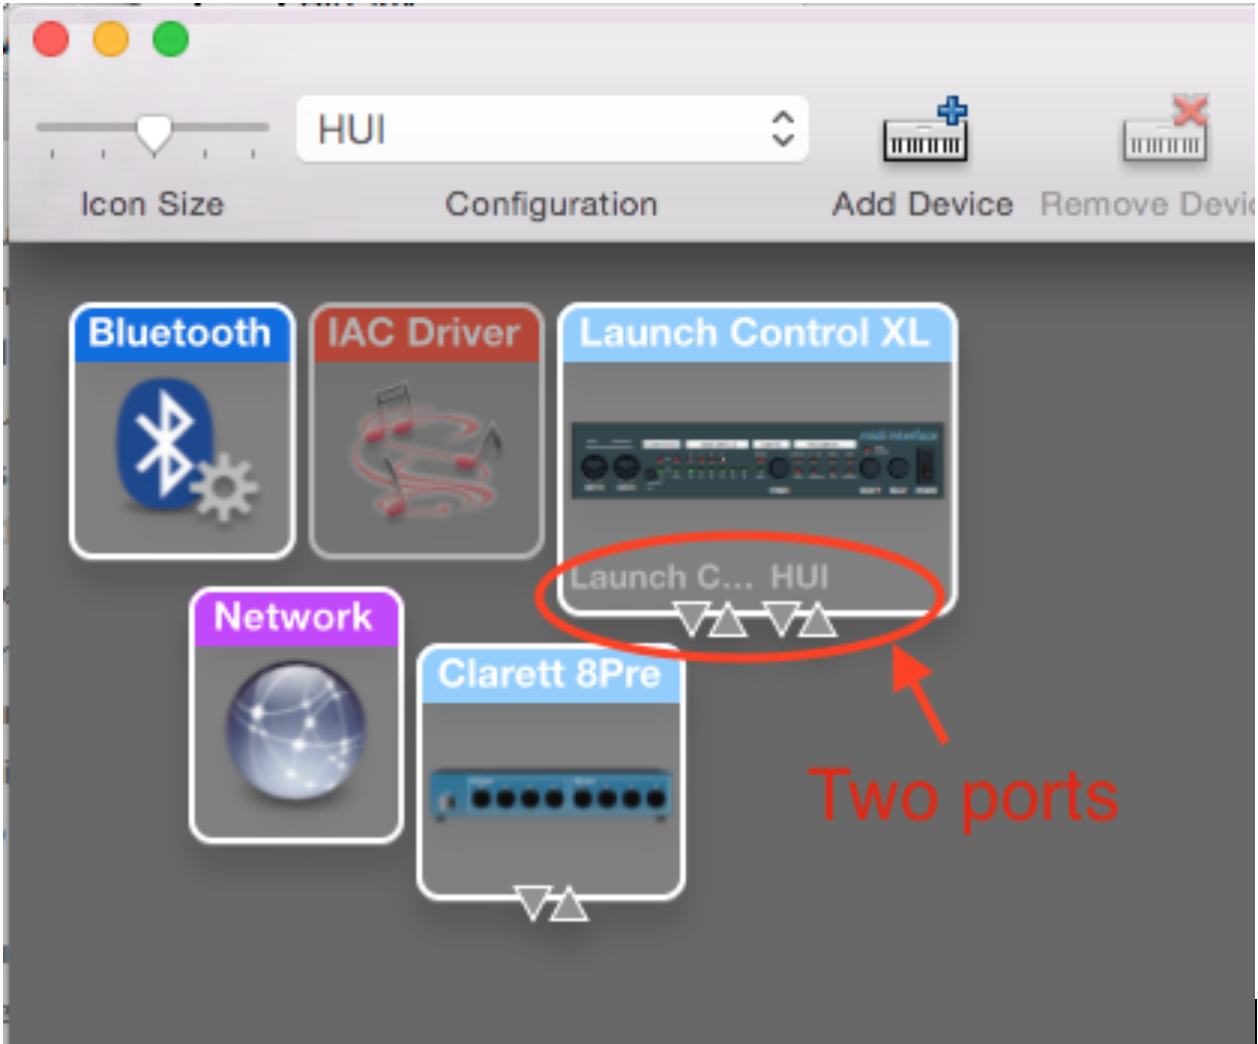 Launch Control Xl Hui Support Novation Logic Pro X Diagram Select Window Show Midi Studio And In The Ensure Is Showing Two Ports